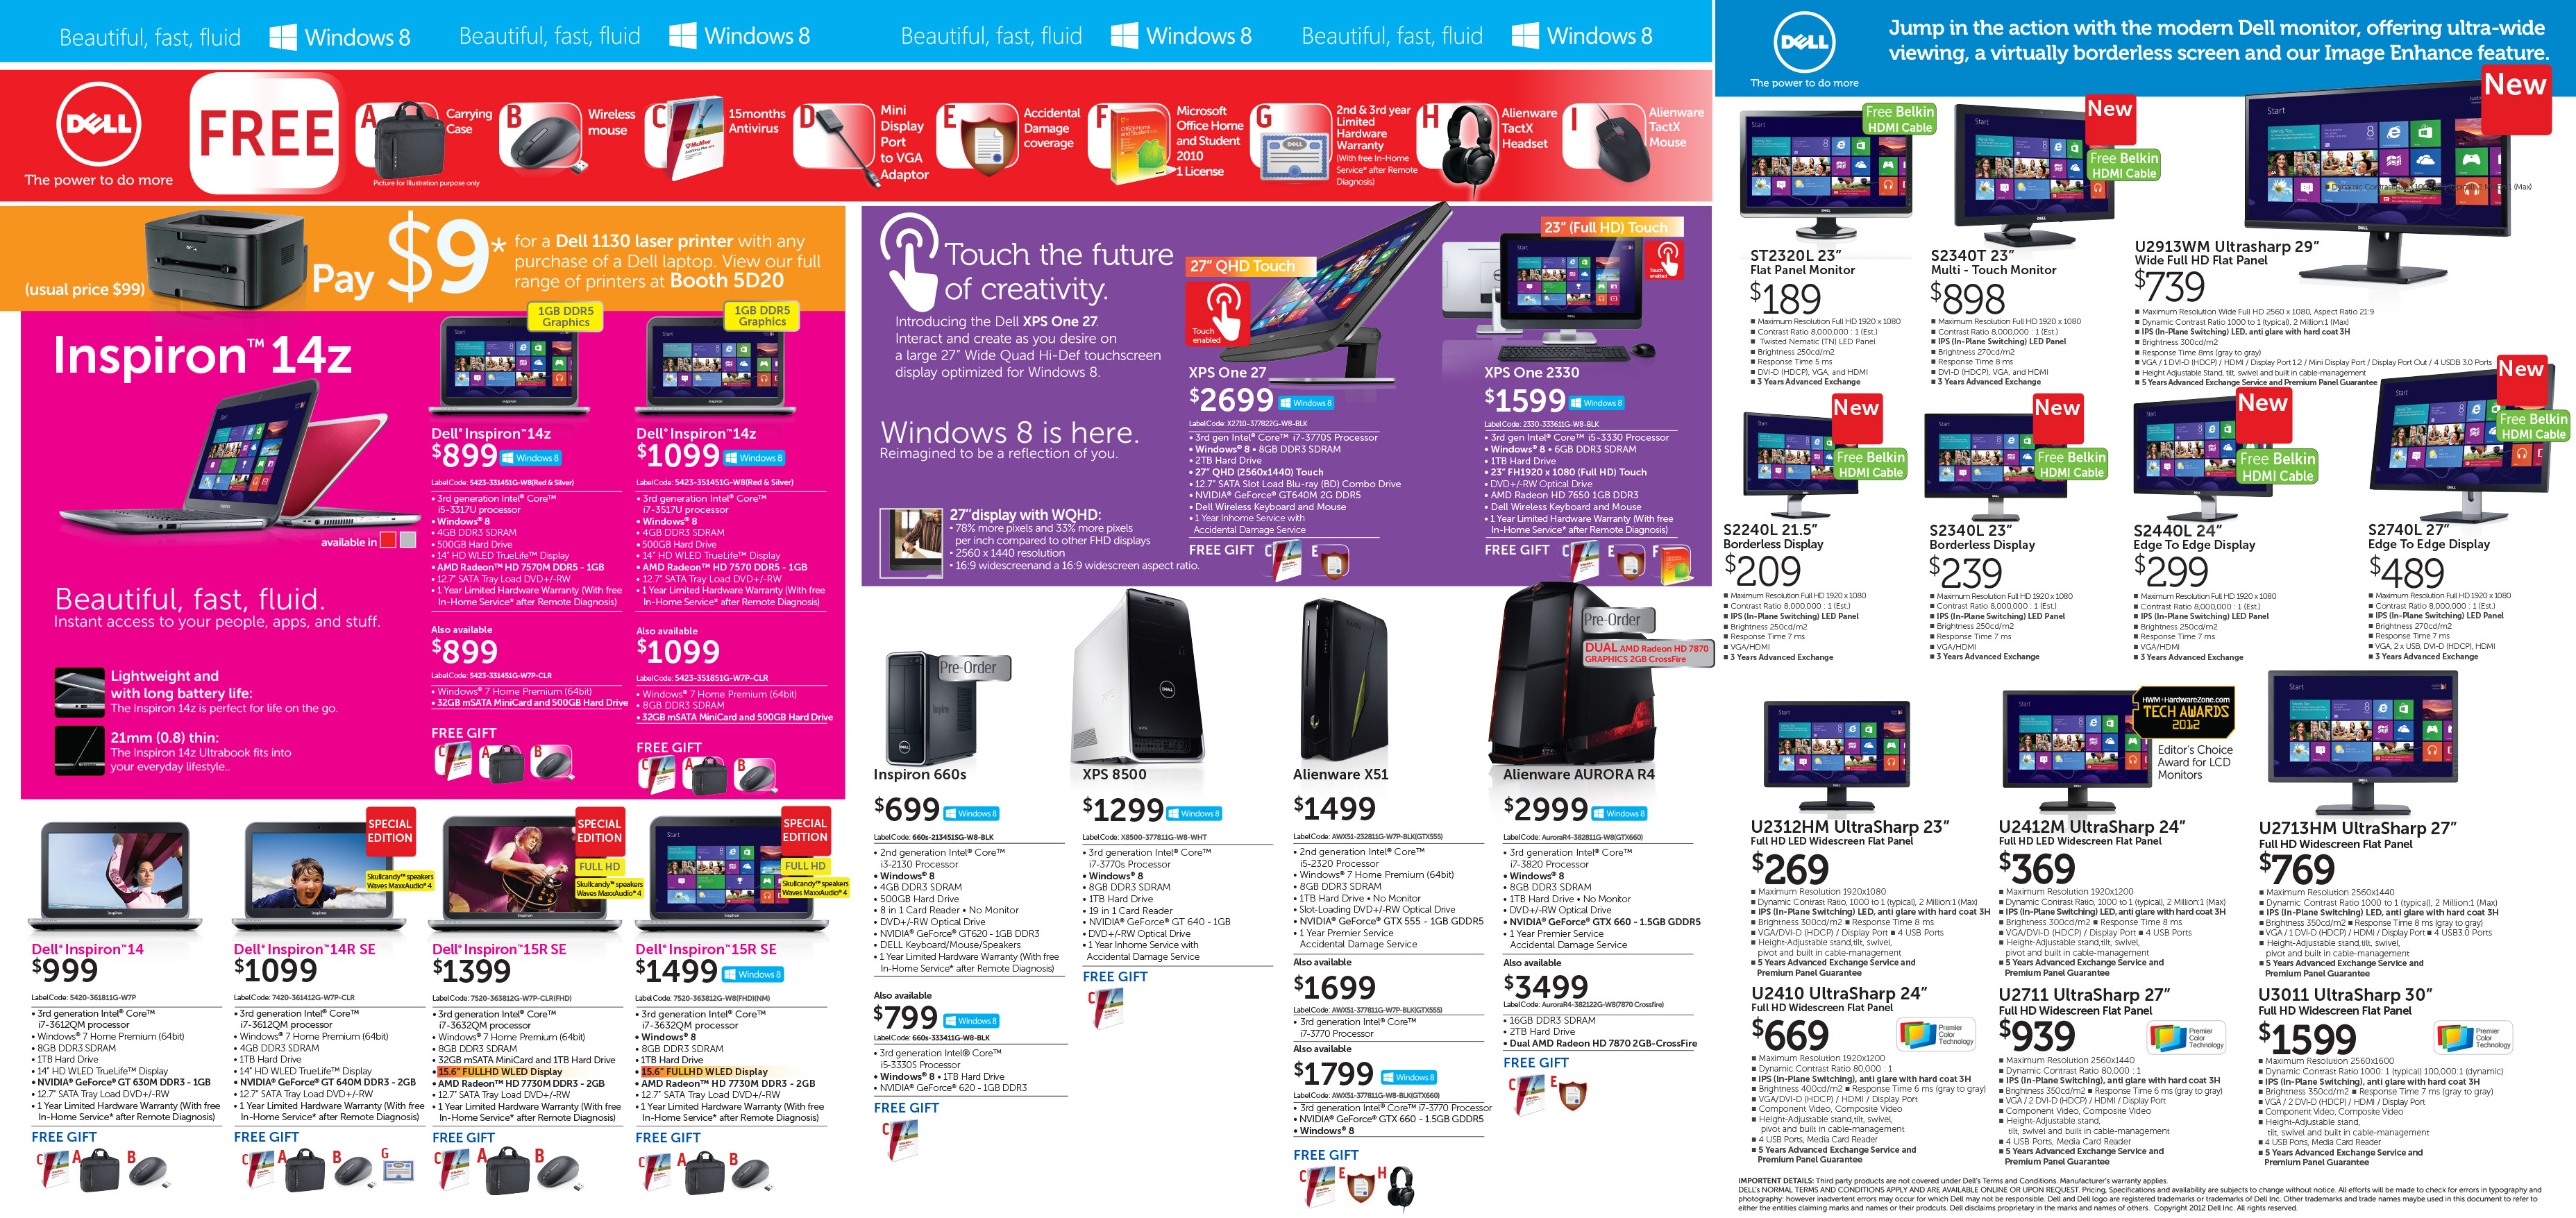 SITEX 2012 - DELL FLYER 1